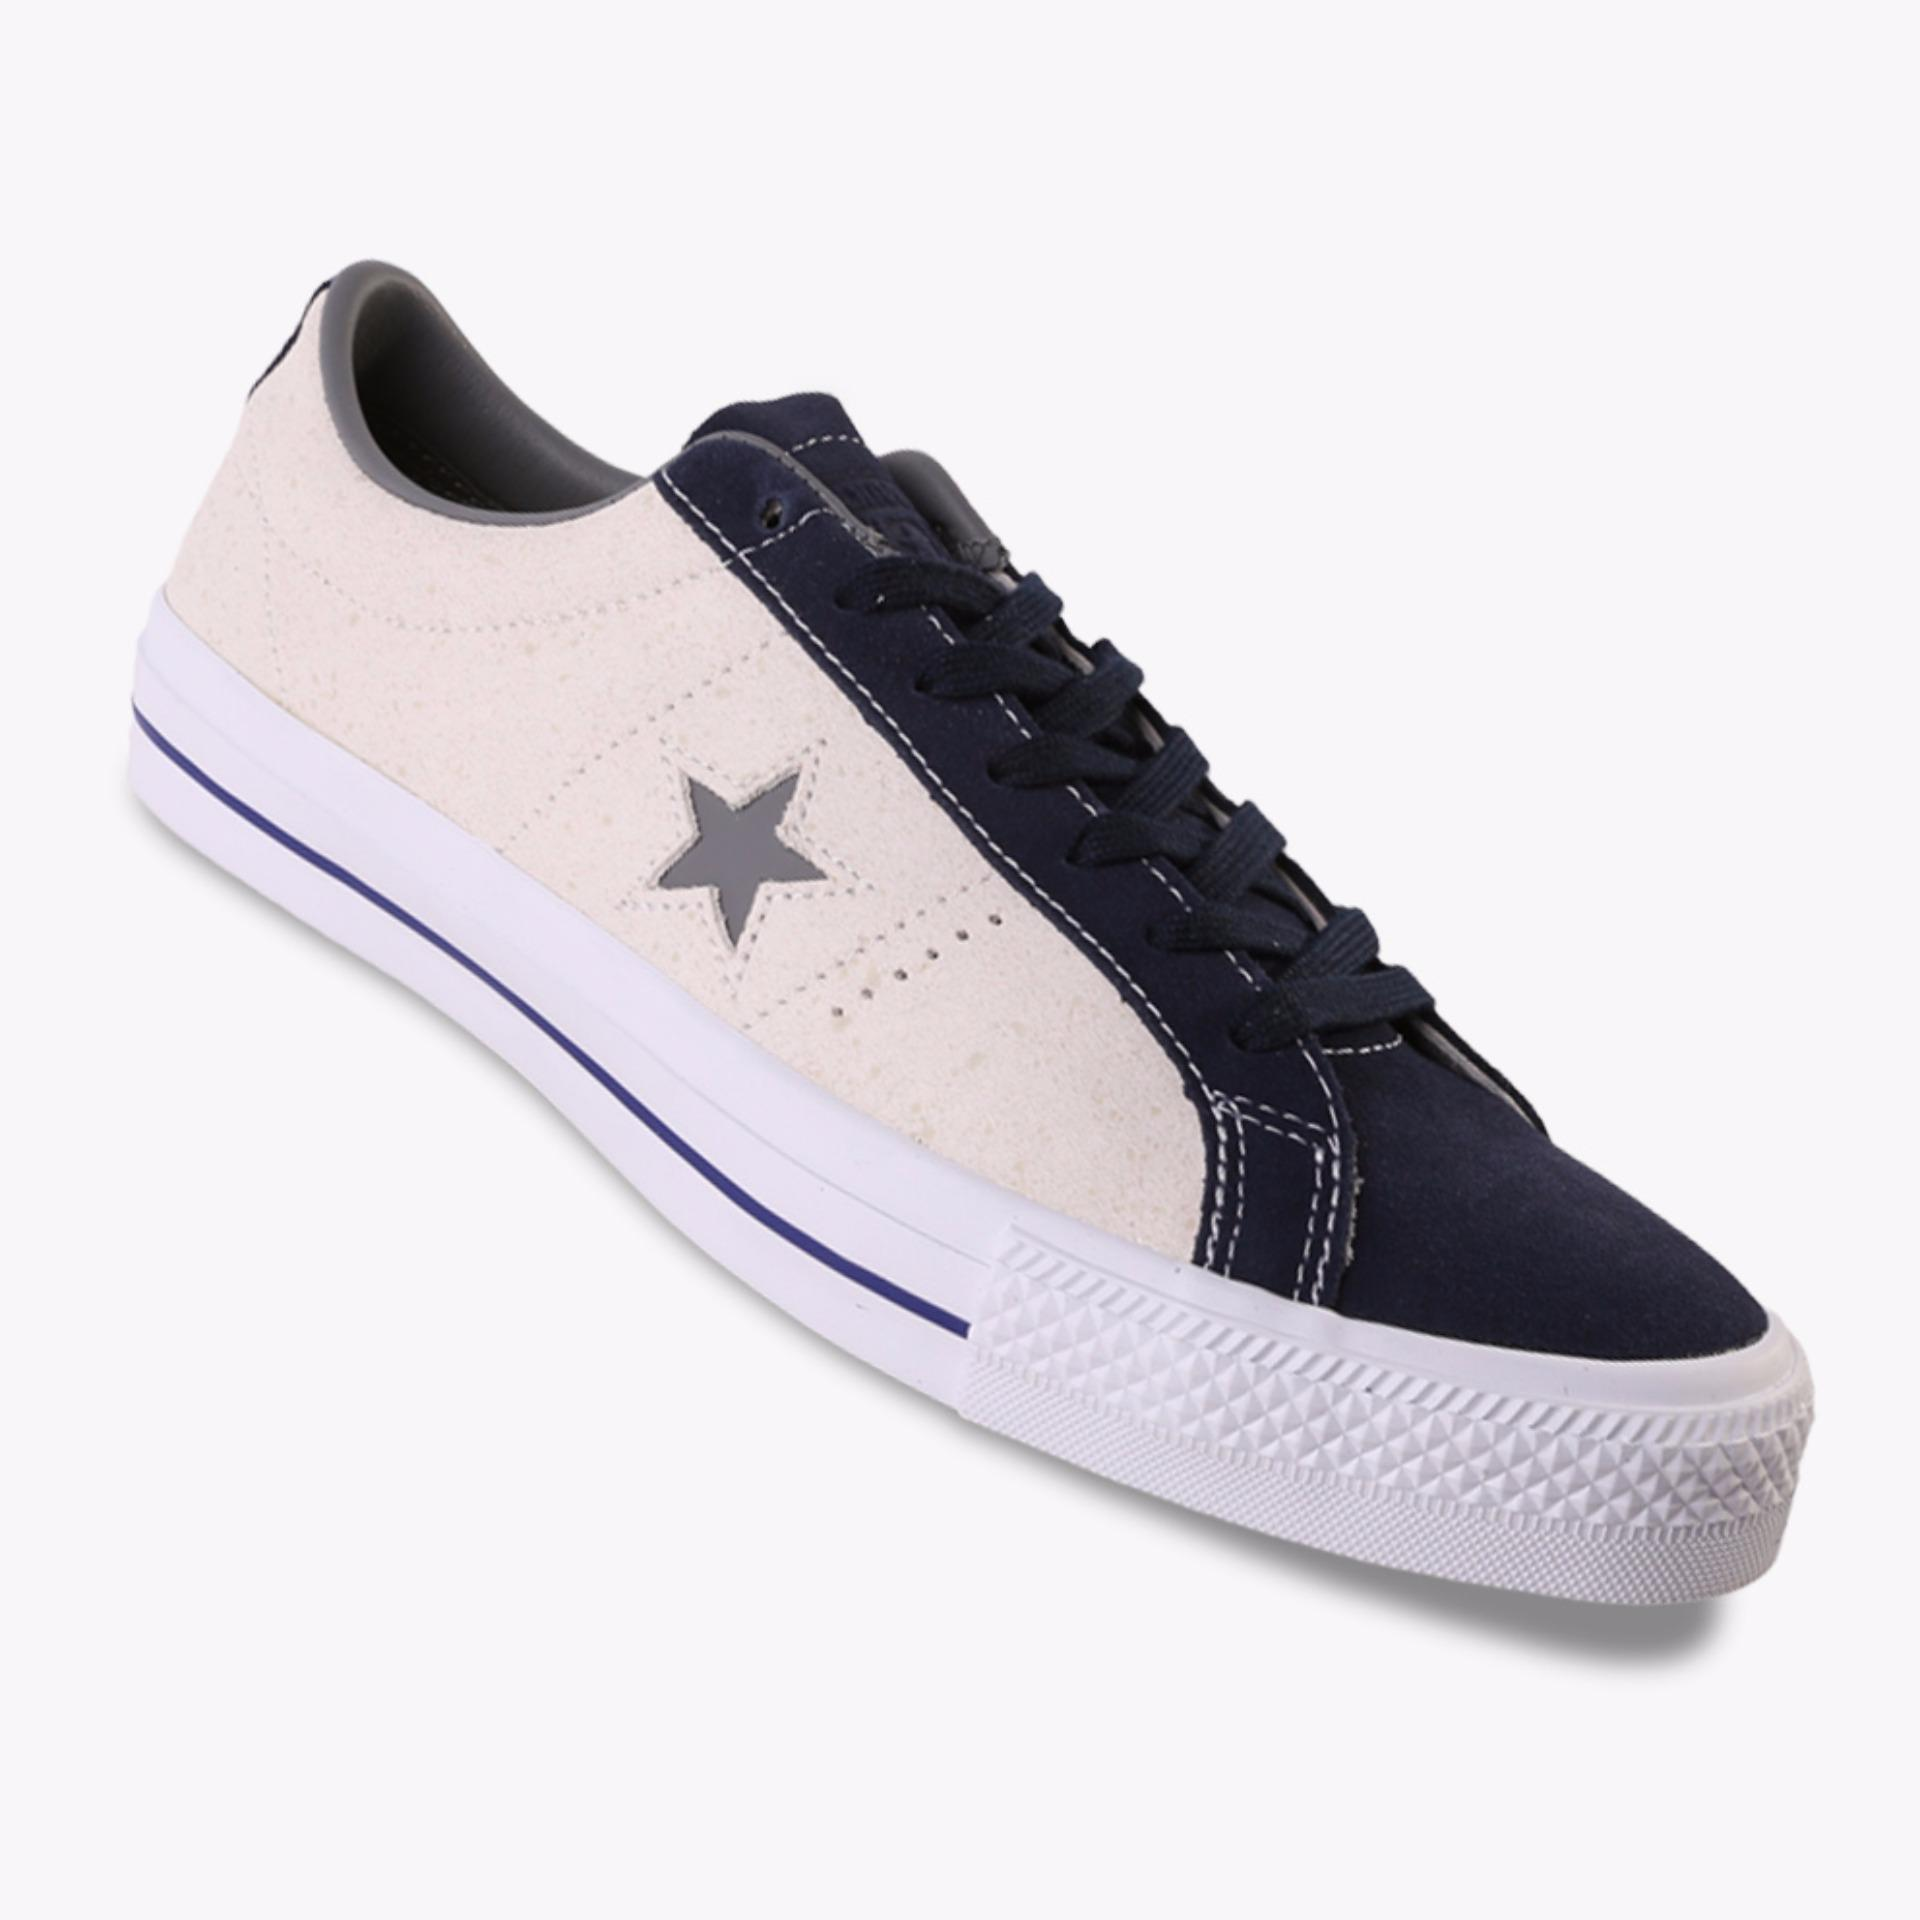 Harga Converse One Star Pro Ox Men S Sneakers Abu Abu Yang Murah